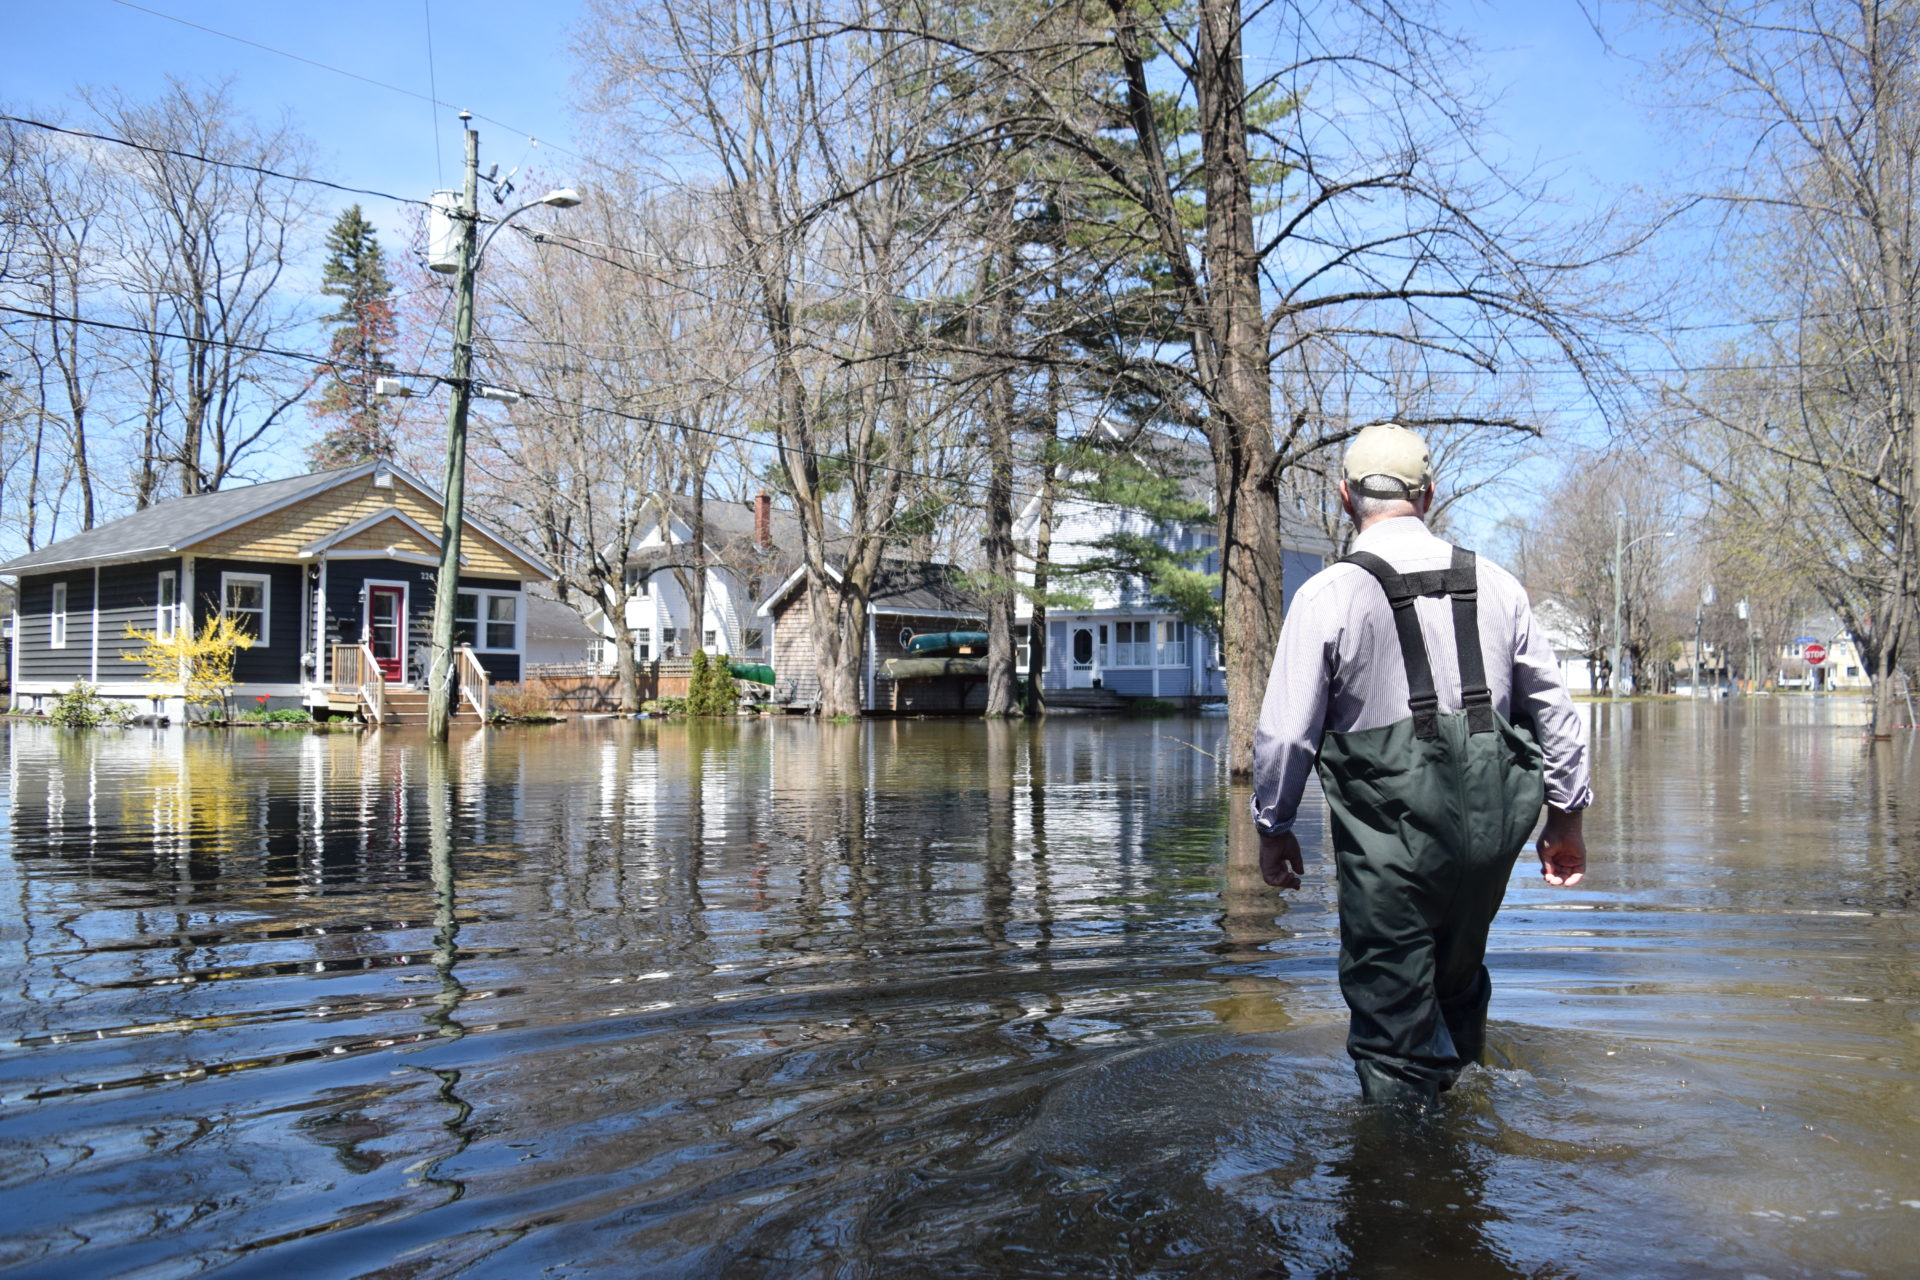 Time for Long-Term Thinking to Minimize Flood Damage